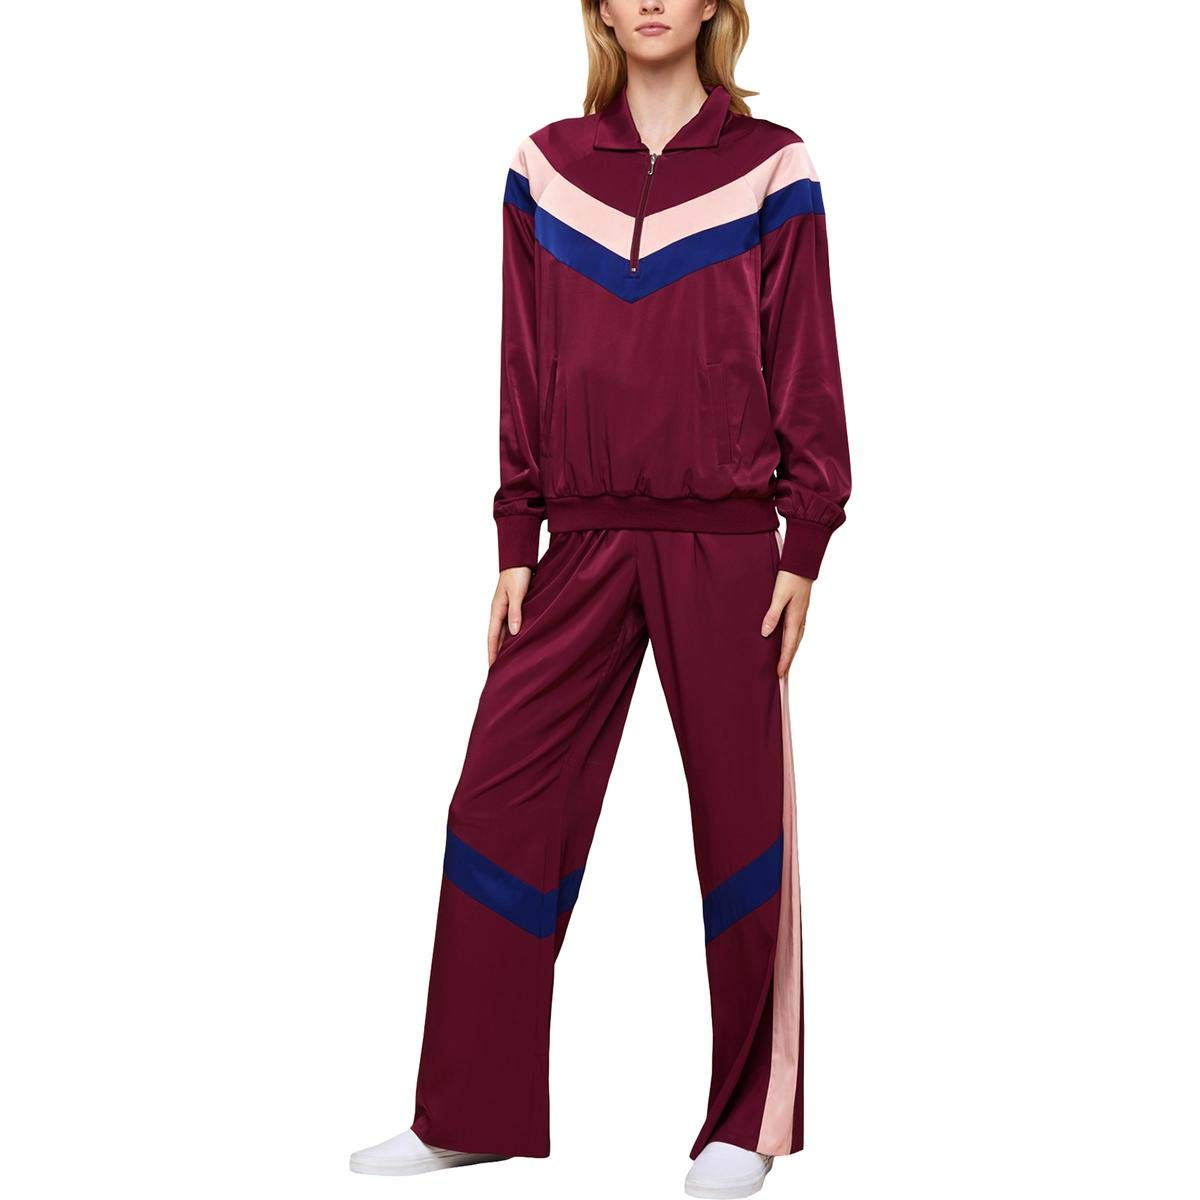 70s Workout Clothes | 80s Tracksuits, Running Shorts, Leotards Juicy Couture Color Block Satin Track Pants $32.99 AT vintagedancer.com